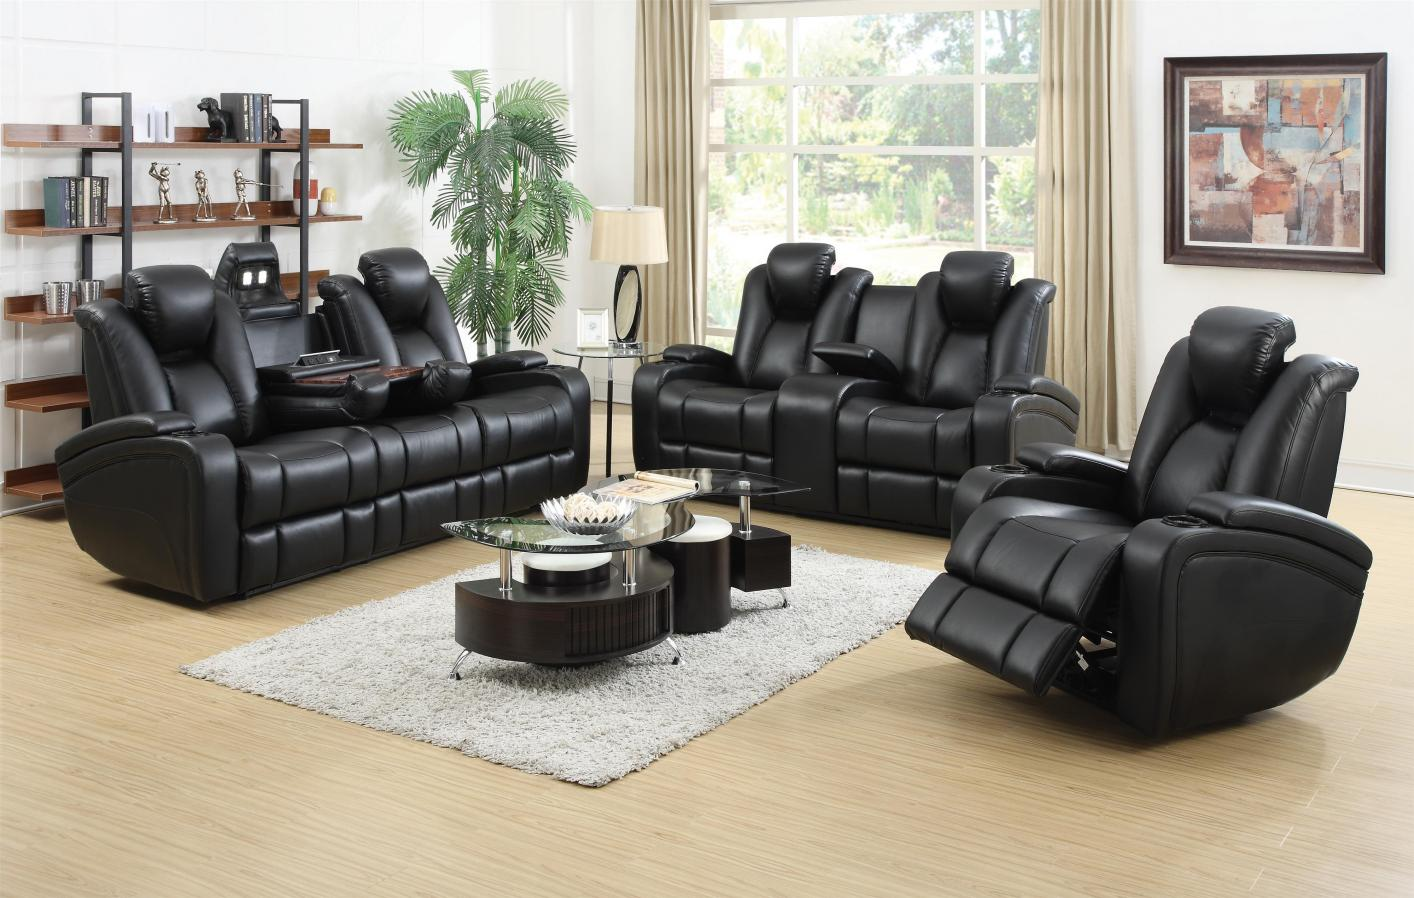 ... Black Leather Power Reclining Sofa : leather loveseat power recliner - islam-shia.org